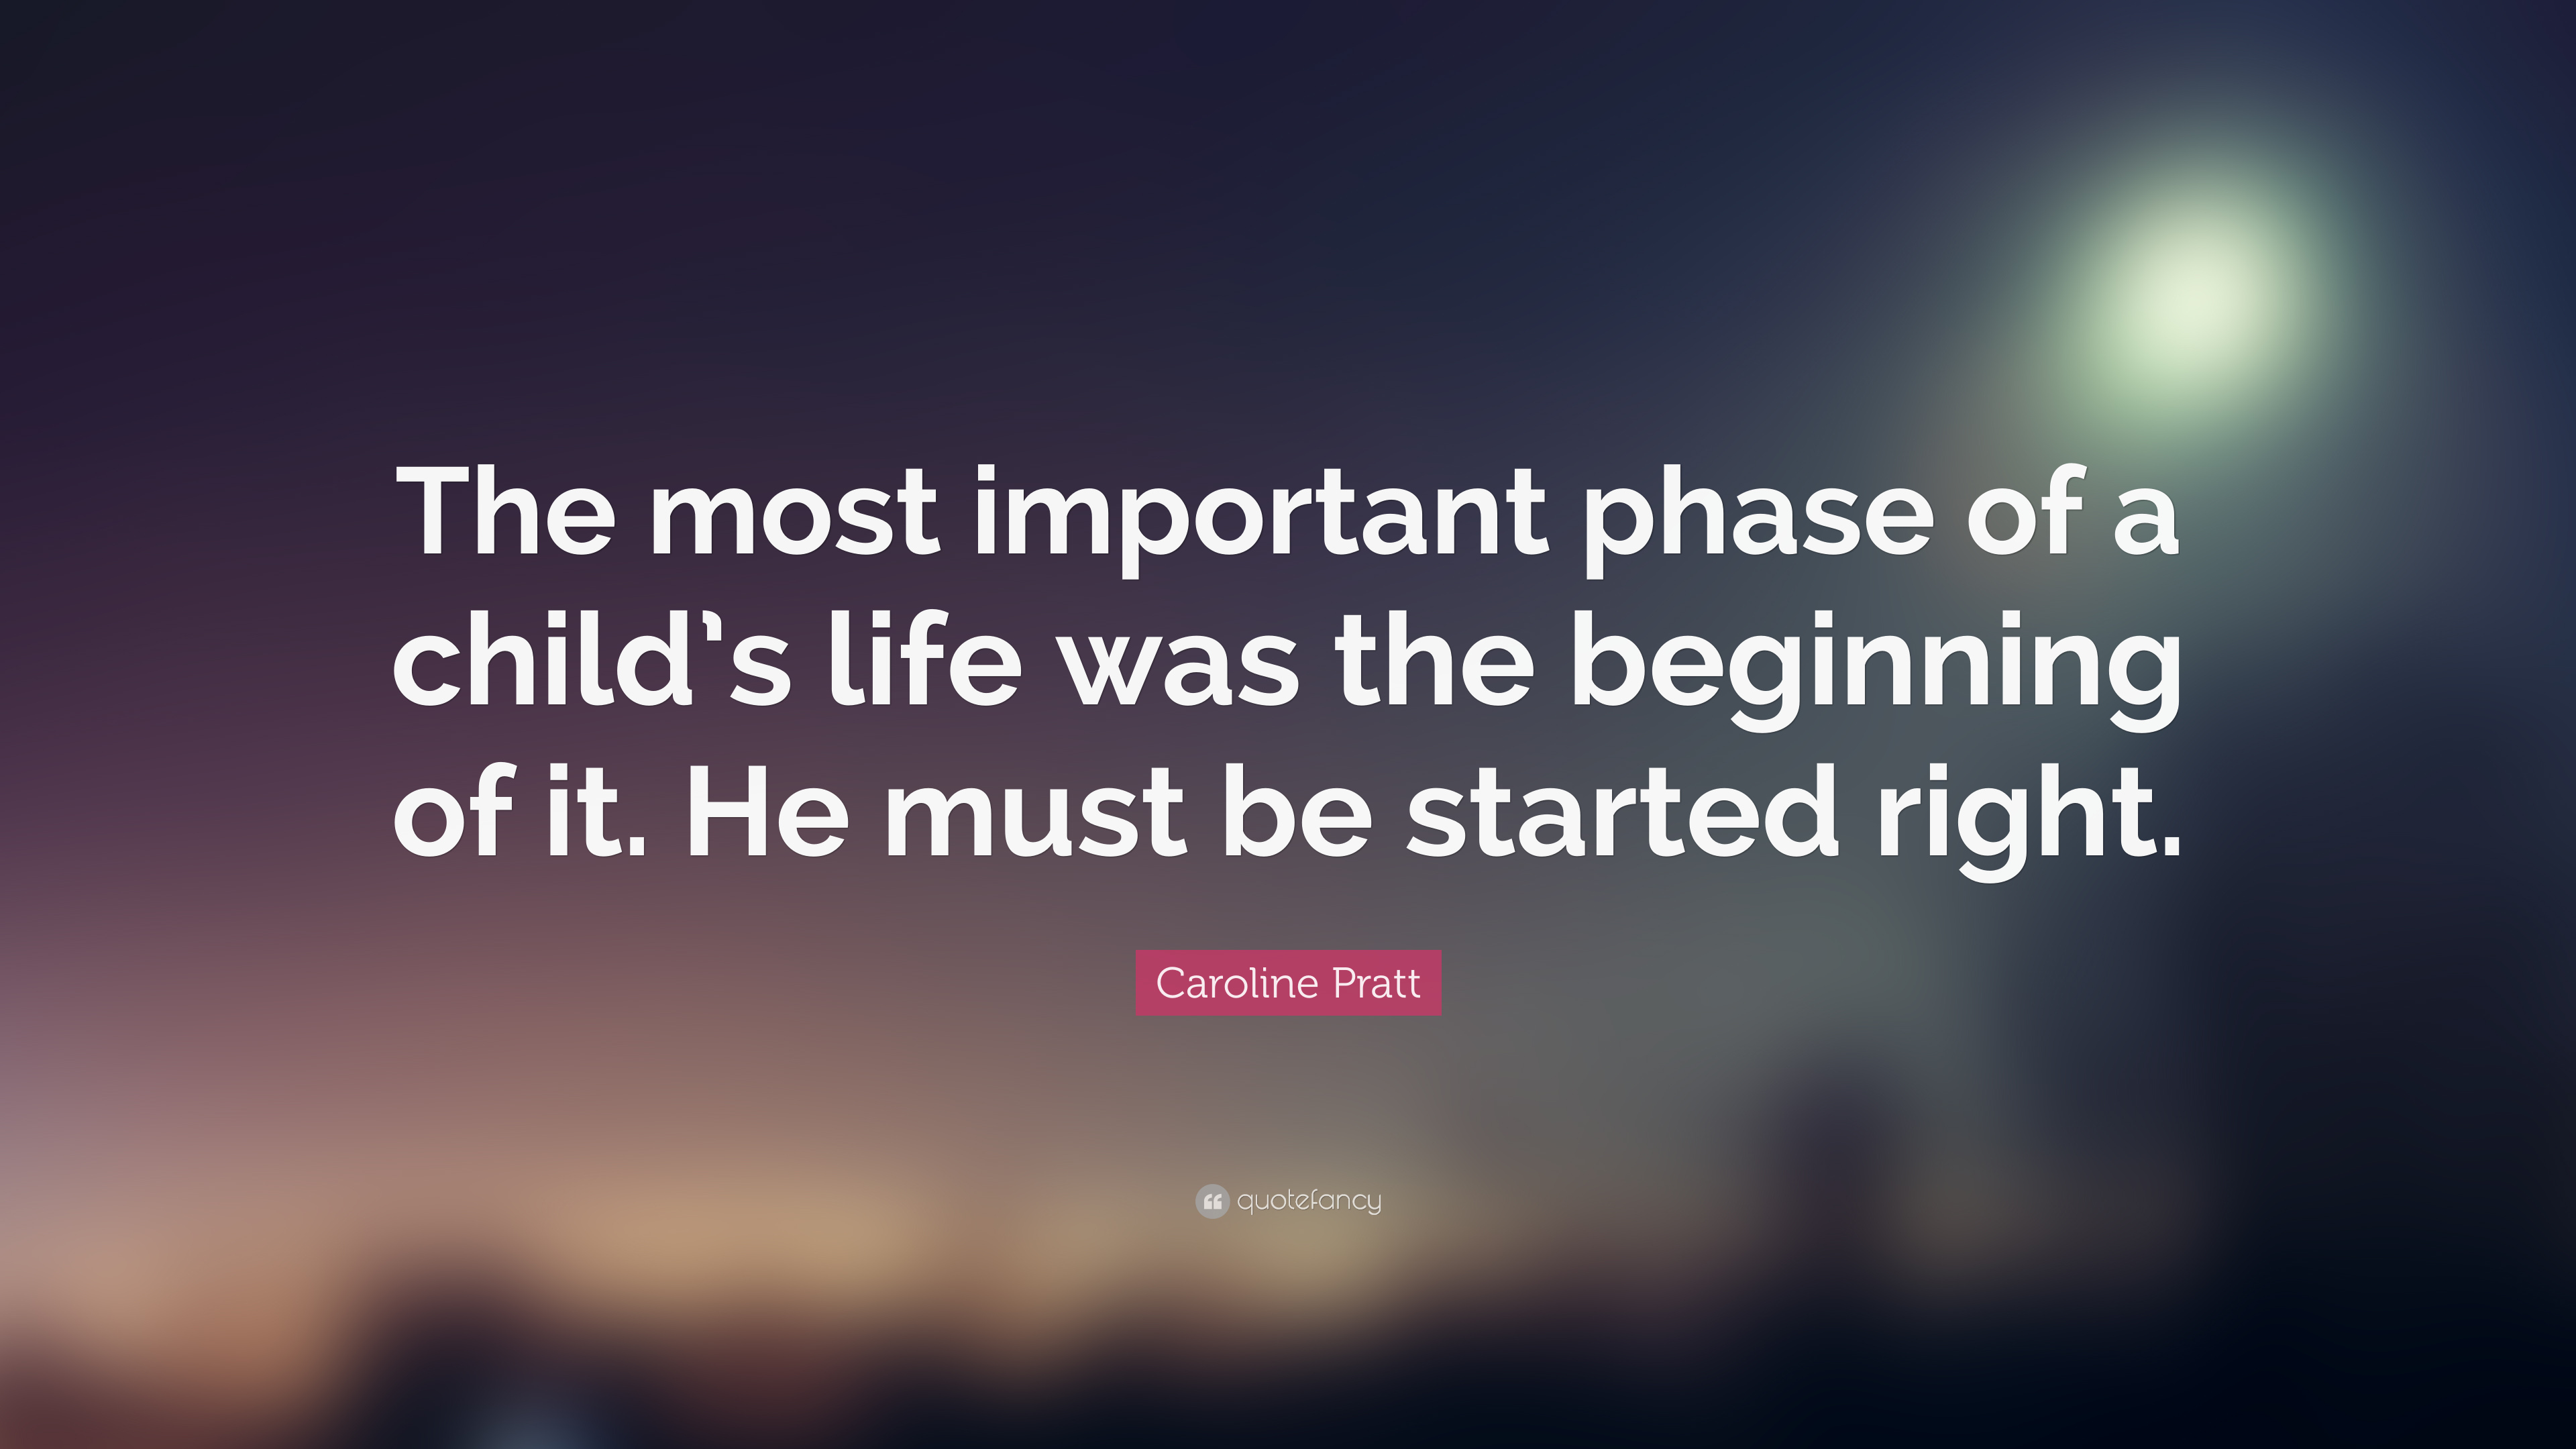 Caroline pratt quote the most important phase of a childs life was the beginning